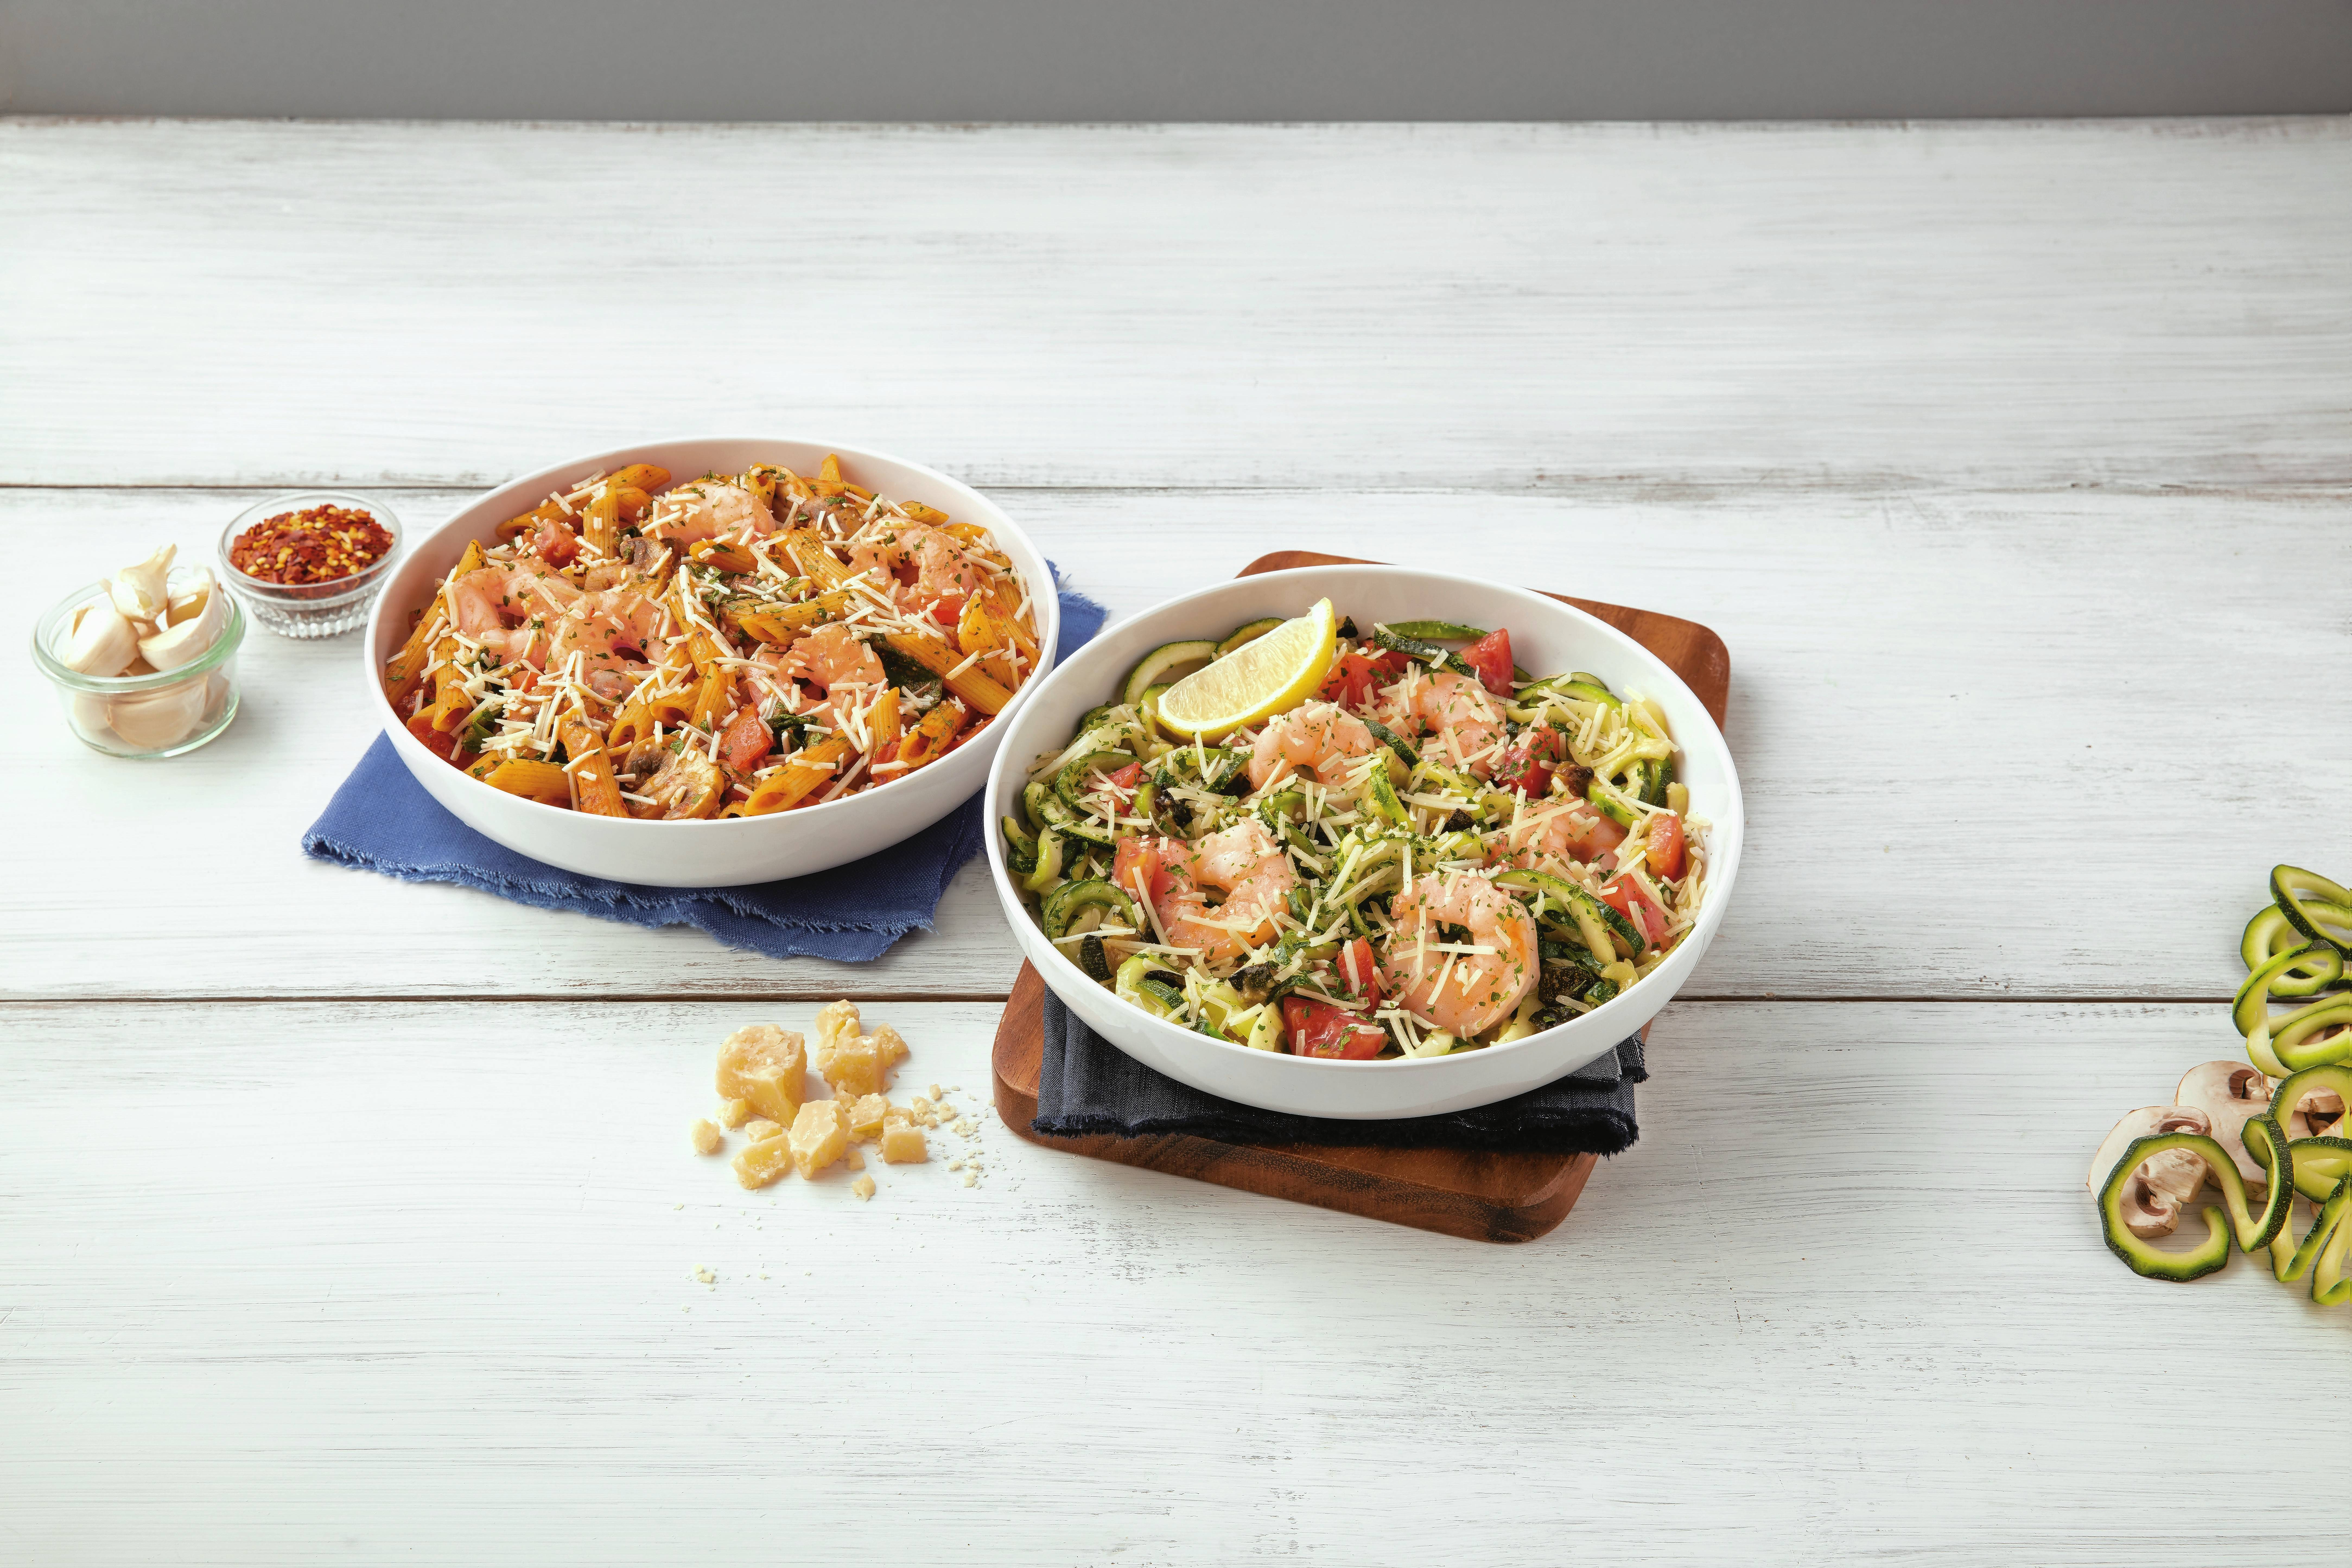 Noodles & Company recently introduced penne rosa with shrimp, left, and zucchini shrimp scampi to its menu.